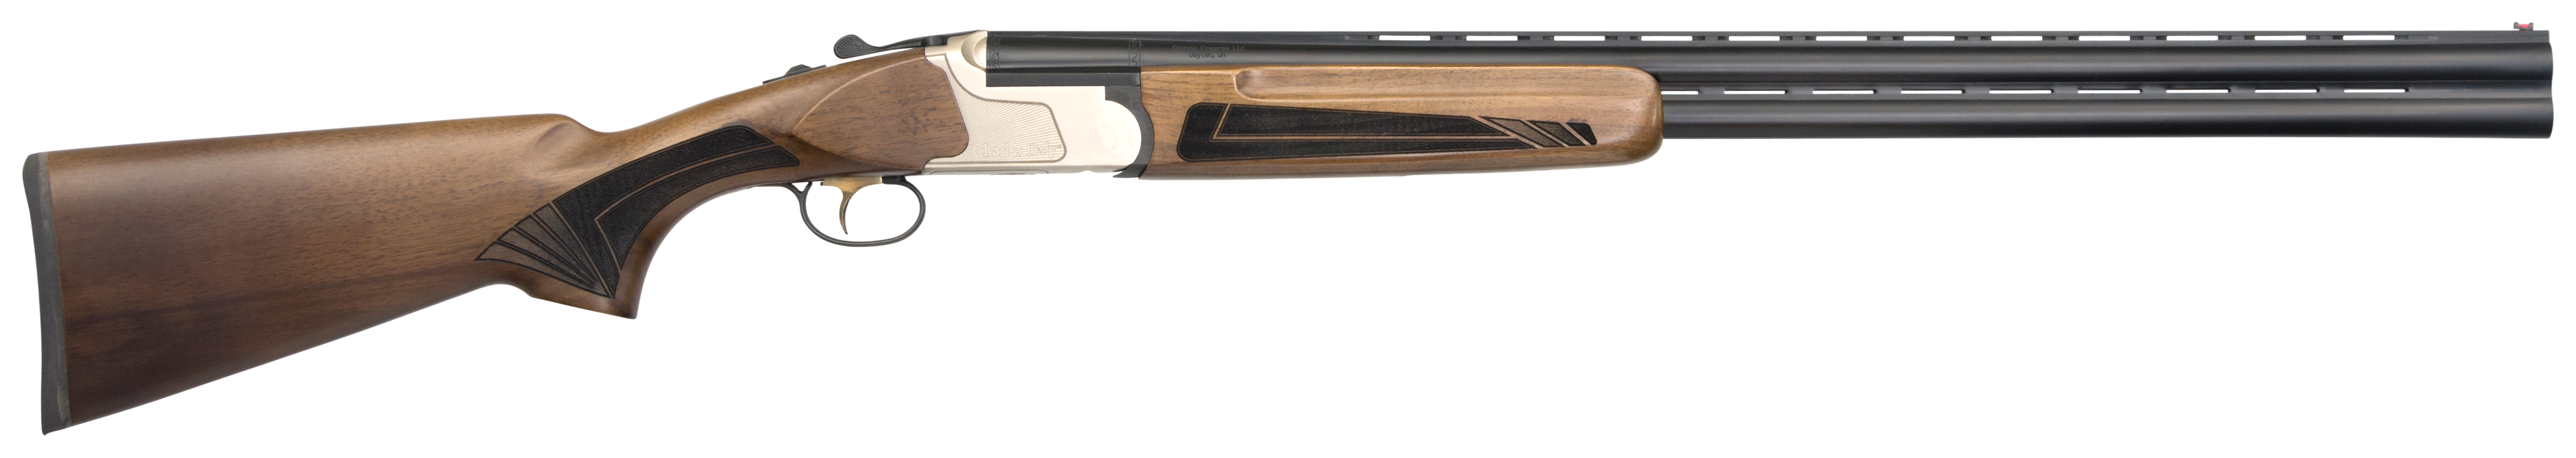 Charles Daly Chiappa 930131 202 Over/Under 20 Gauge 26